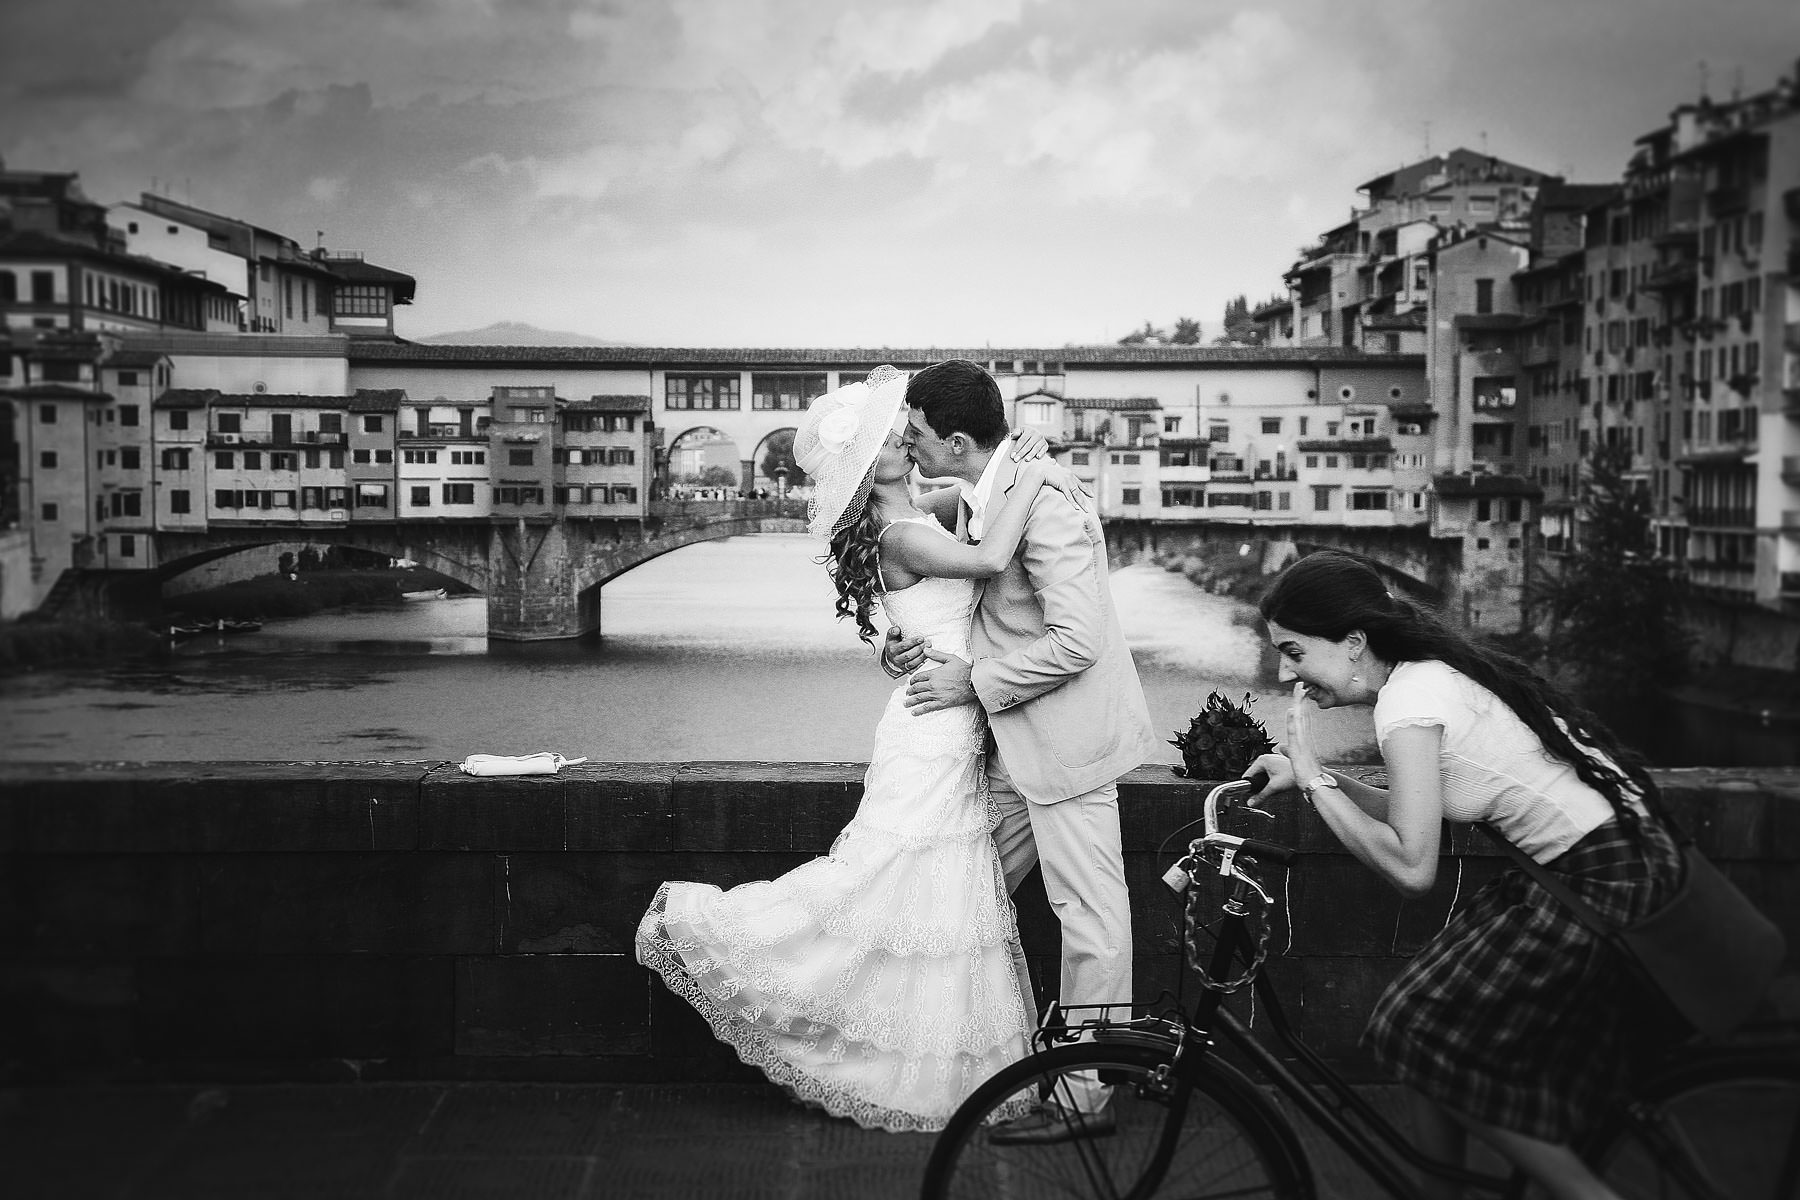 Reportage wedding photo in Florence at Ponte Vecchio.